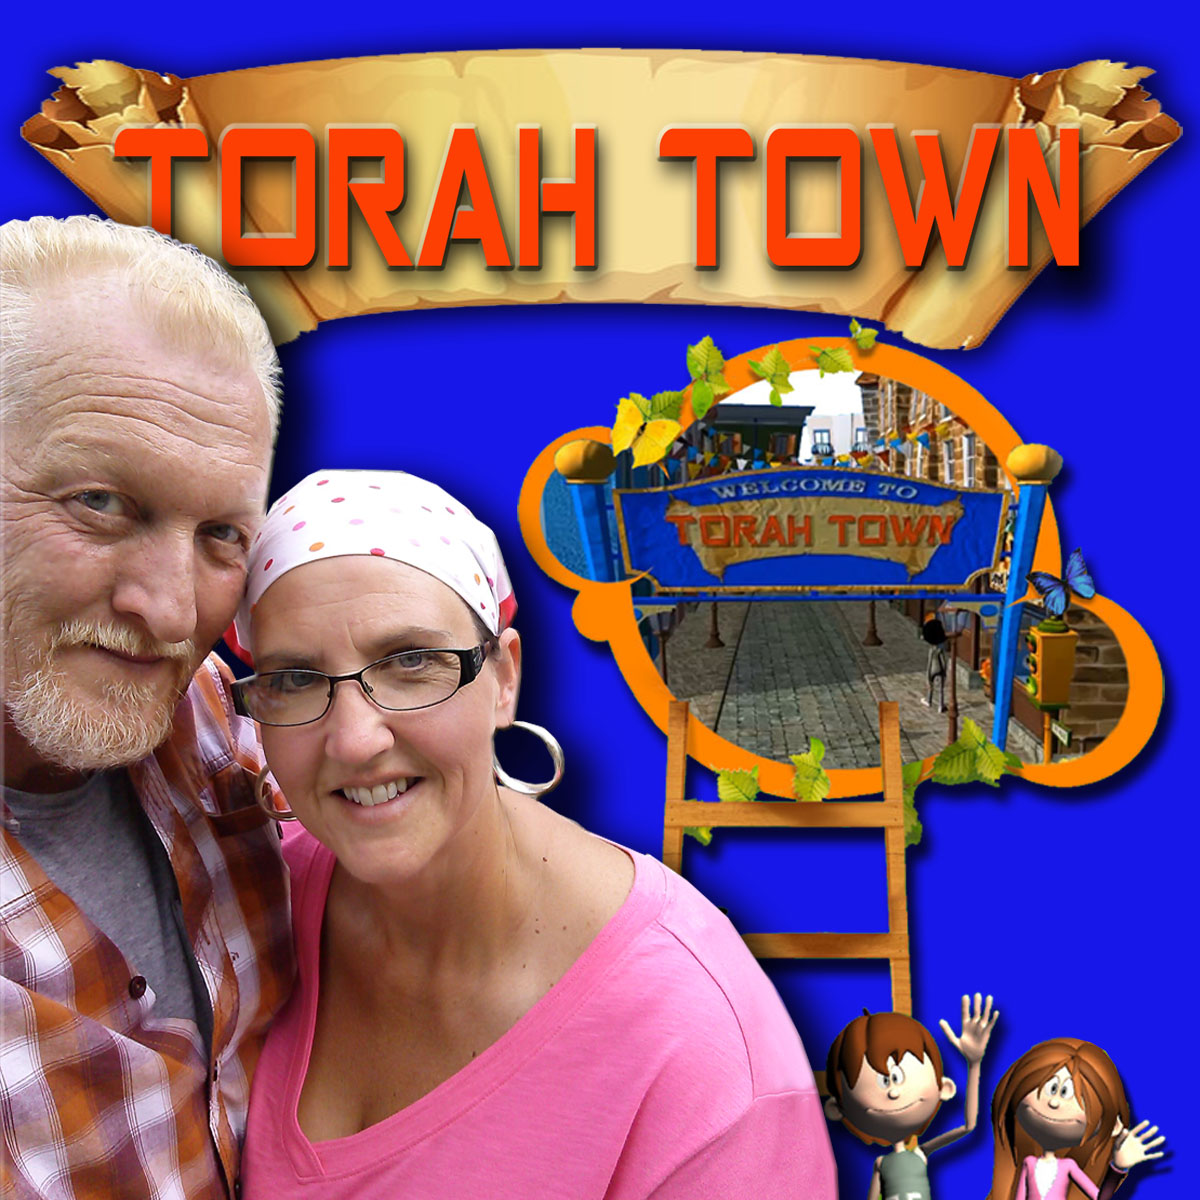 Torah Town | Sponsor of the 2019 Doorkeepers Conference